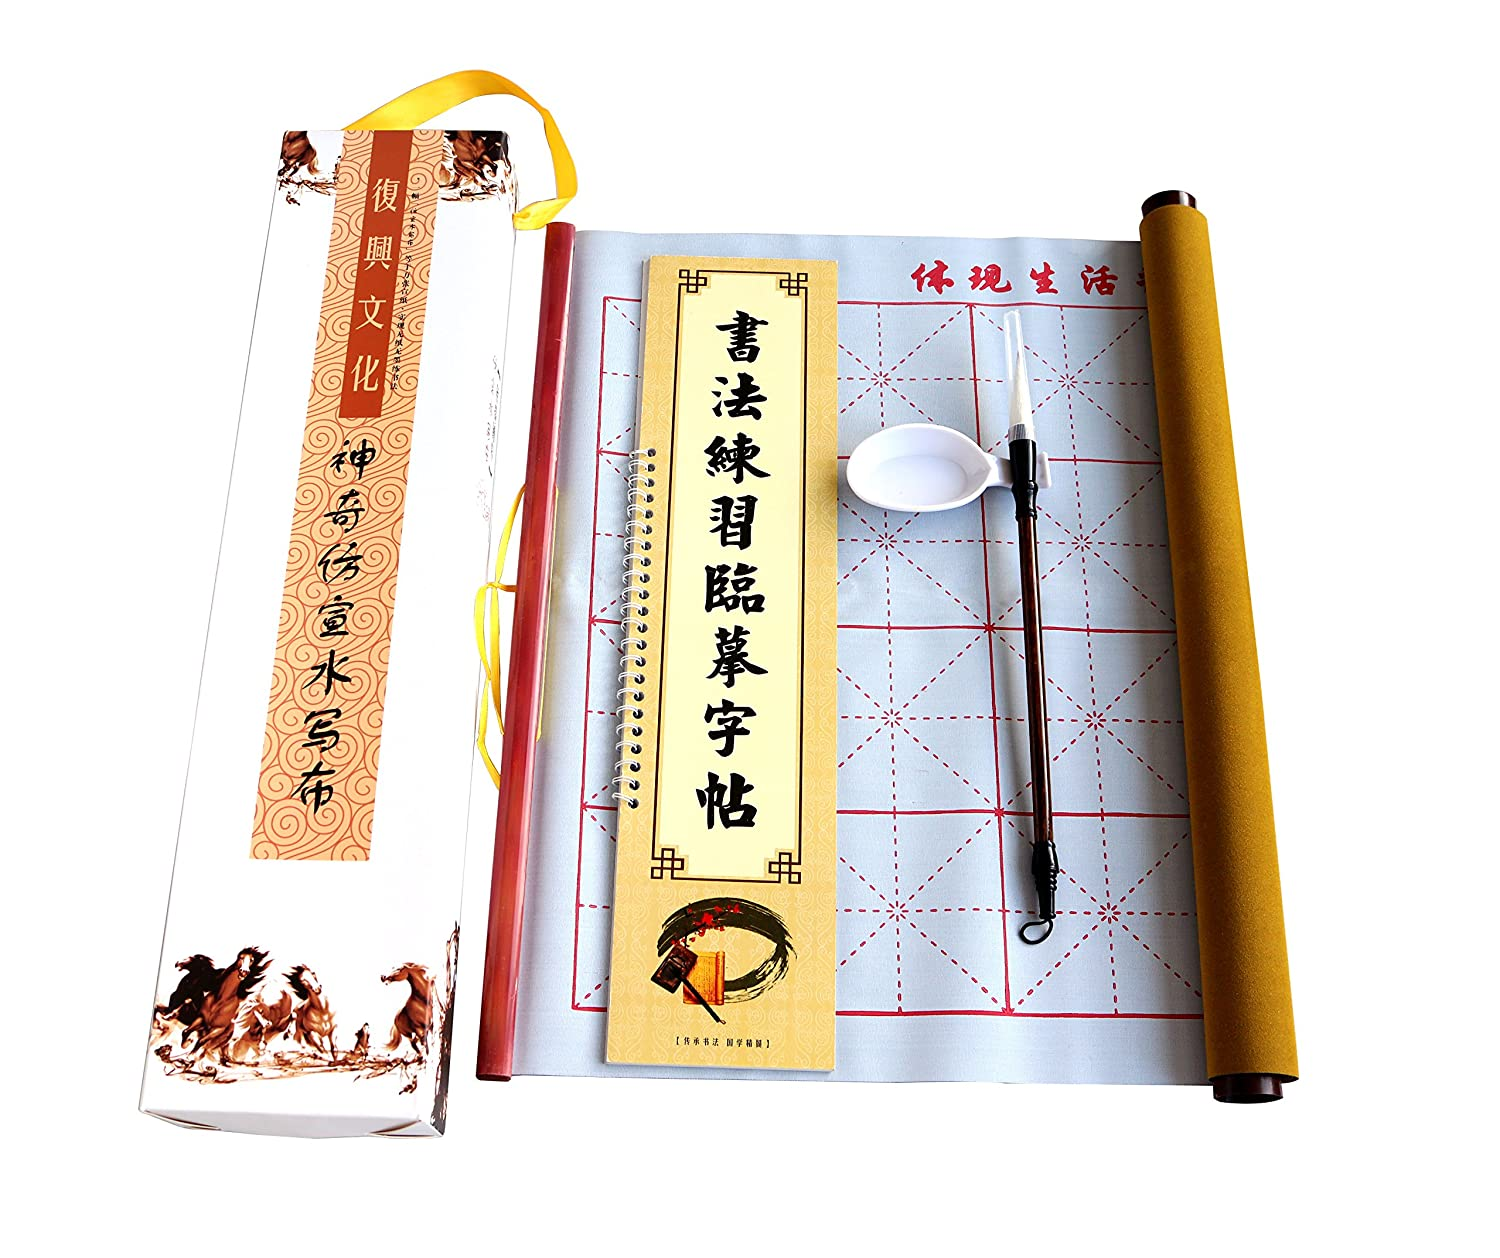 HorBous Reusable Recyclable Chinese Calligraphy Water Writing Magic Cloth / paper with roll + Chinese Calligraphy Copybook Gift Set